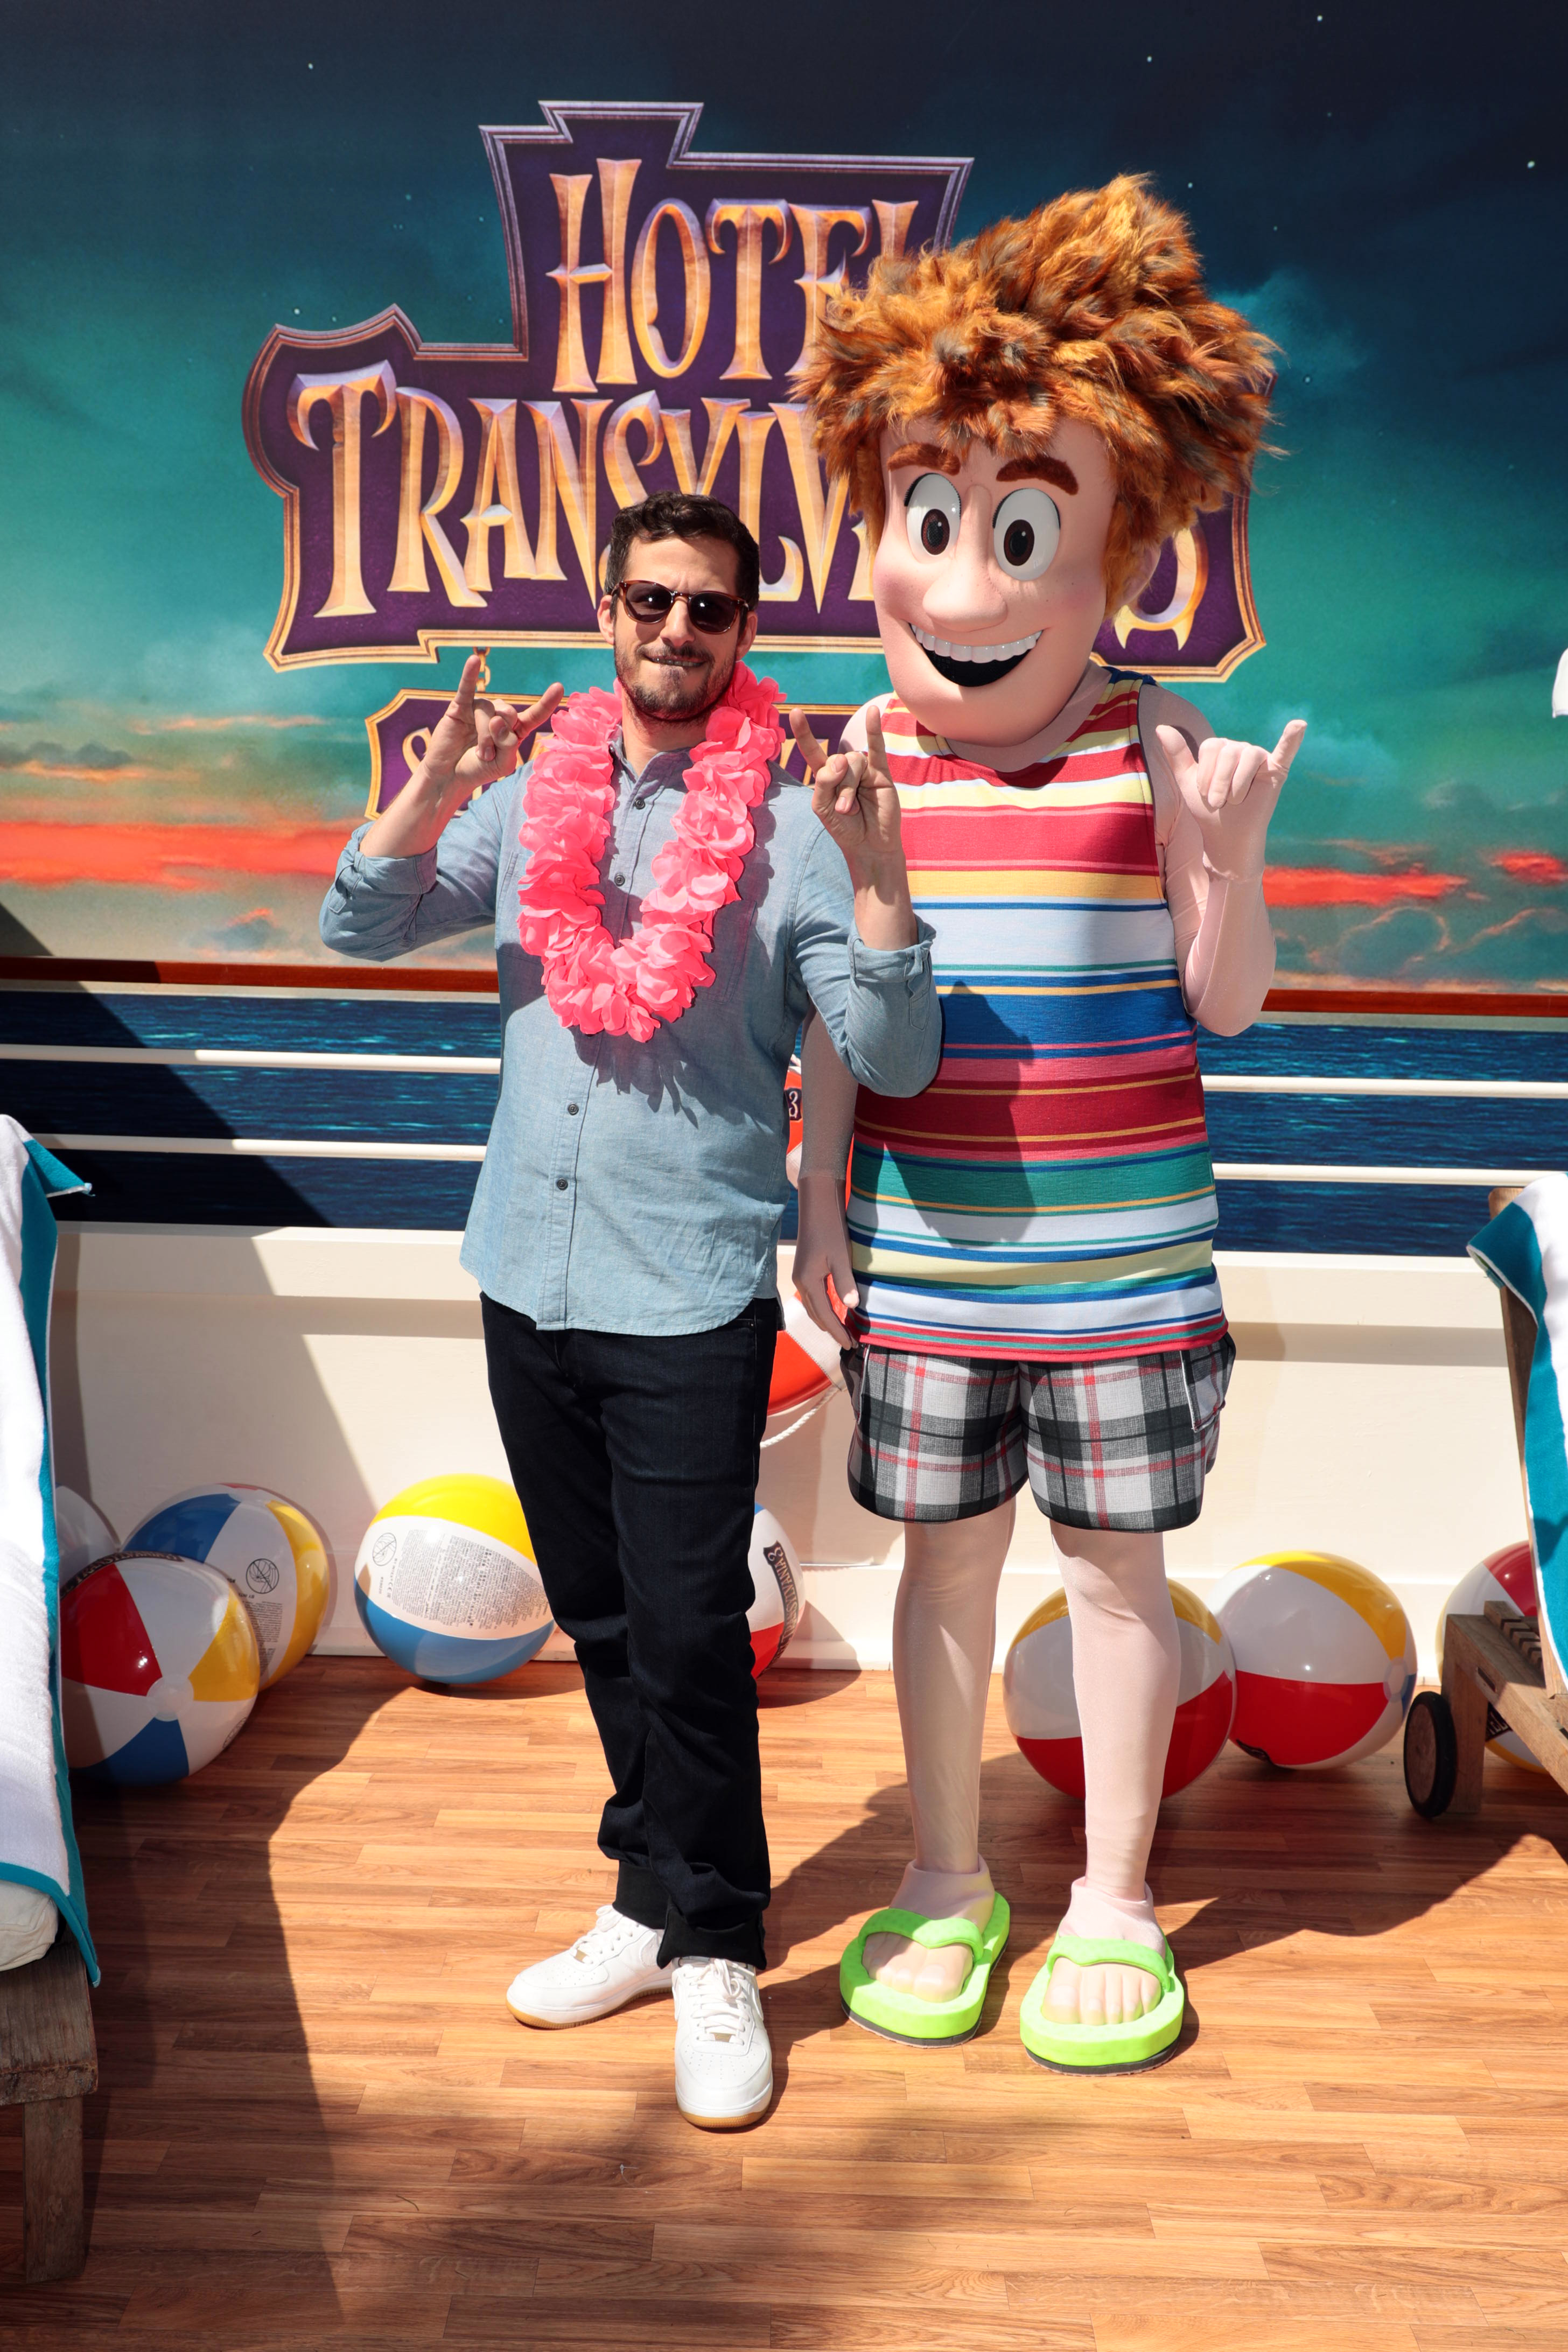 Hotel Transylvania 3 Summer Vacation Selena Gomez At Spa Press Day New Character Reveals Jana On Camera